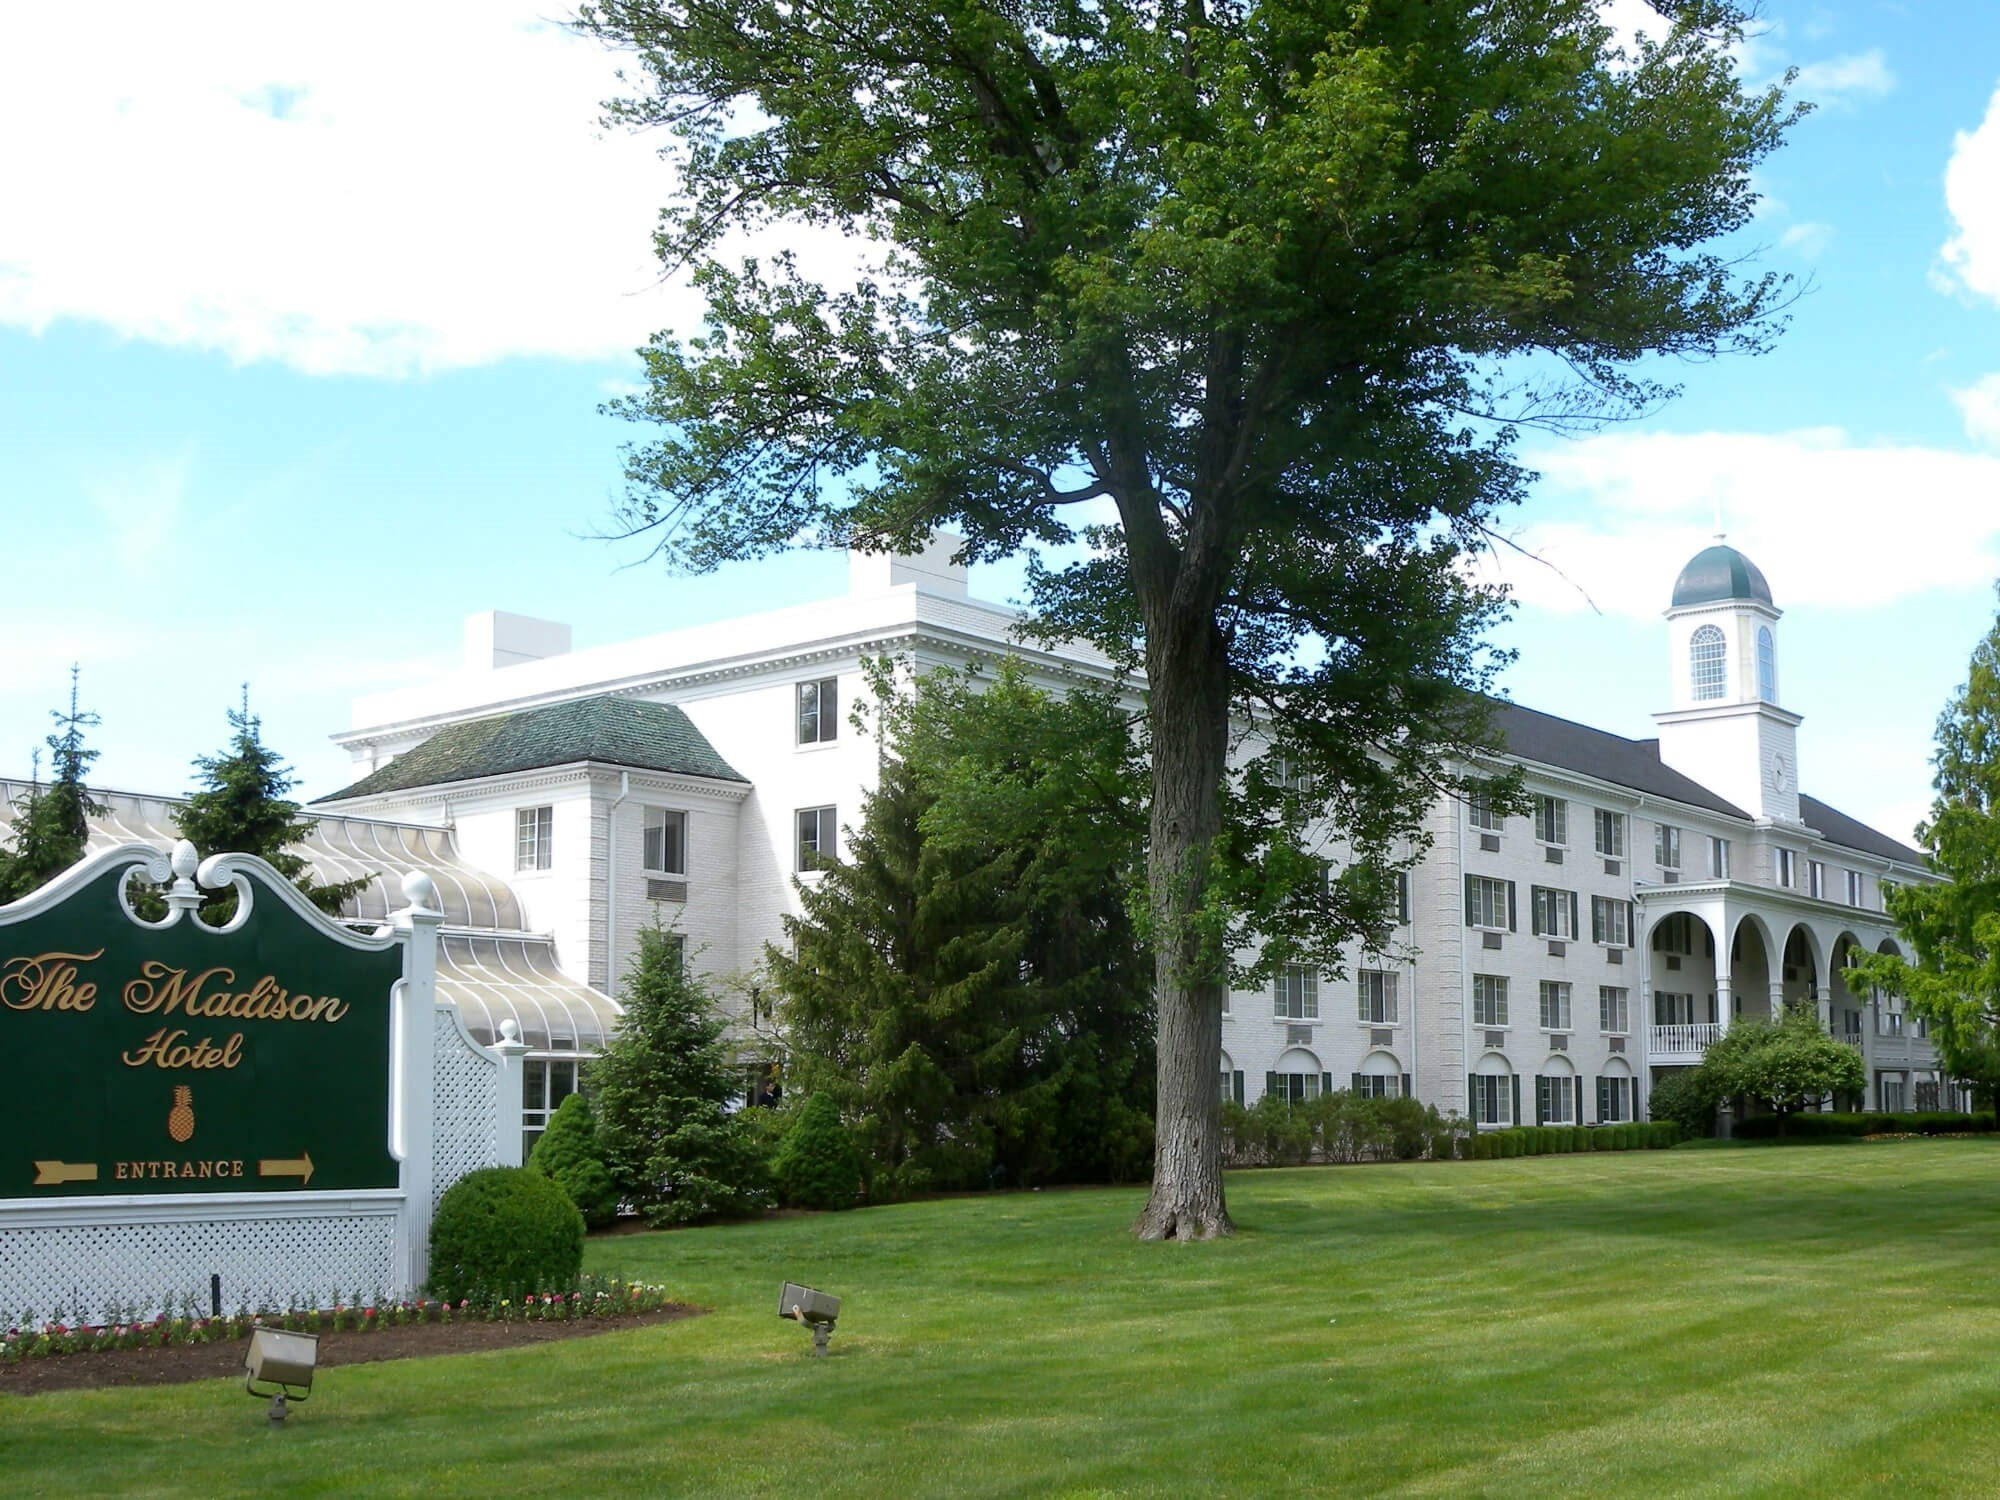 Image of The Madison Hotel